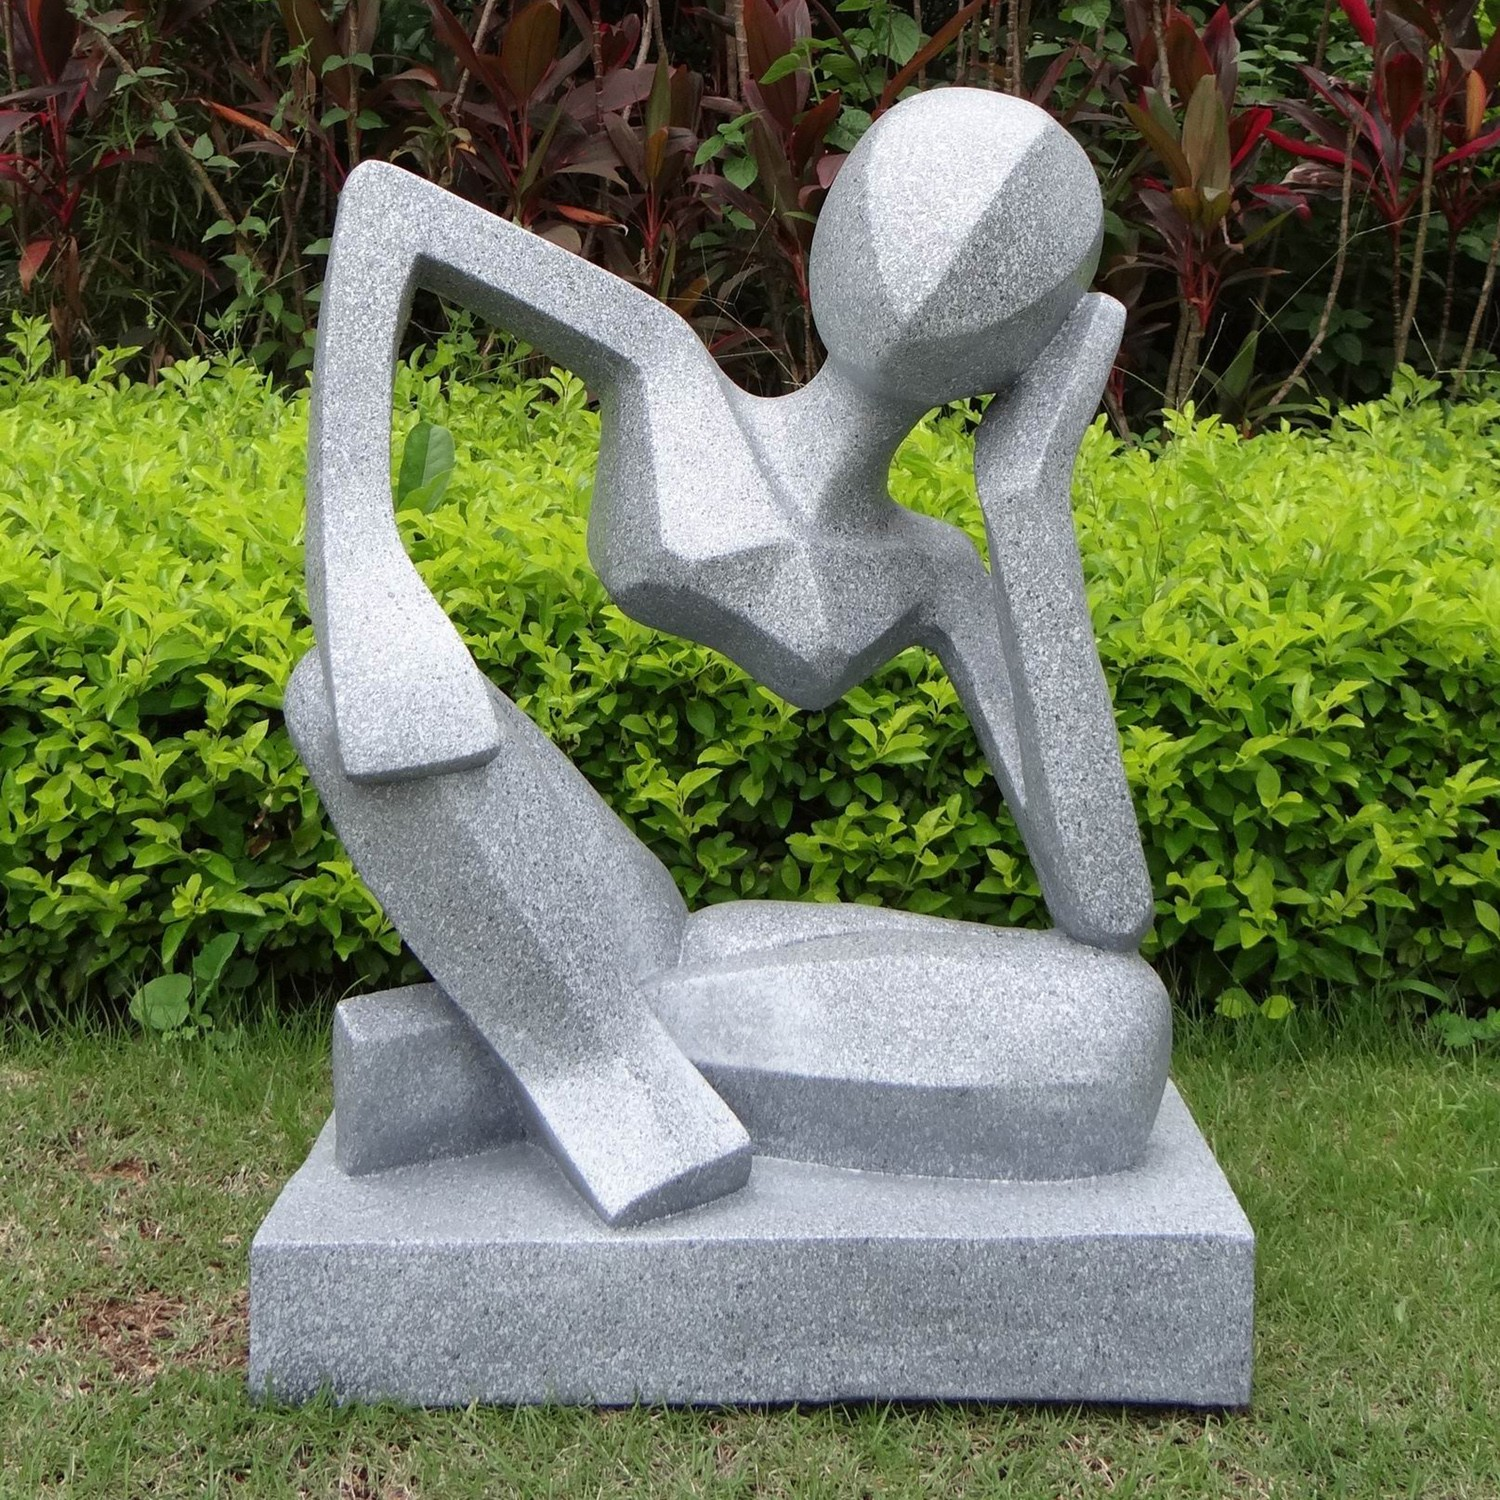 Sculpture Contemporaine Extérieure Three Reasons To Have Statues In The Garden Flamingo